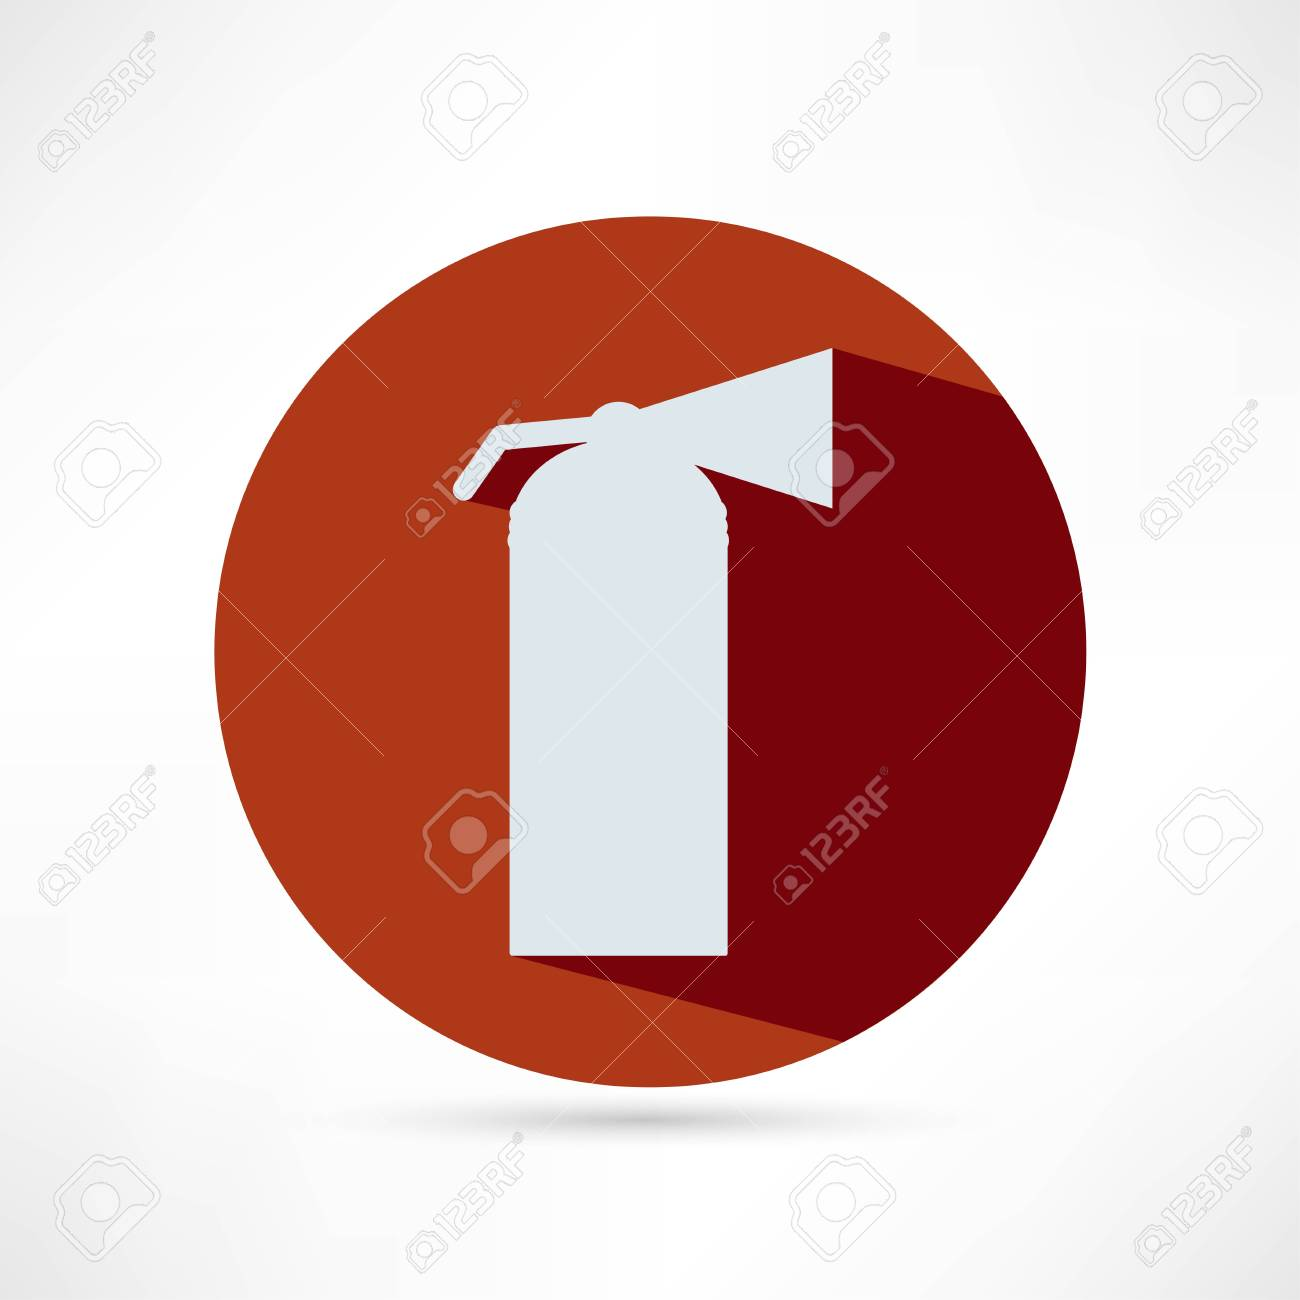 Fire extinguisher isolated on a white background Stock Vector - 25018745